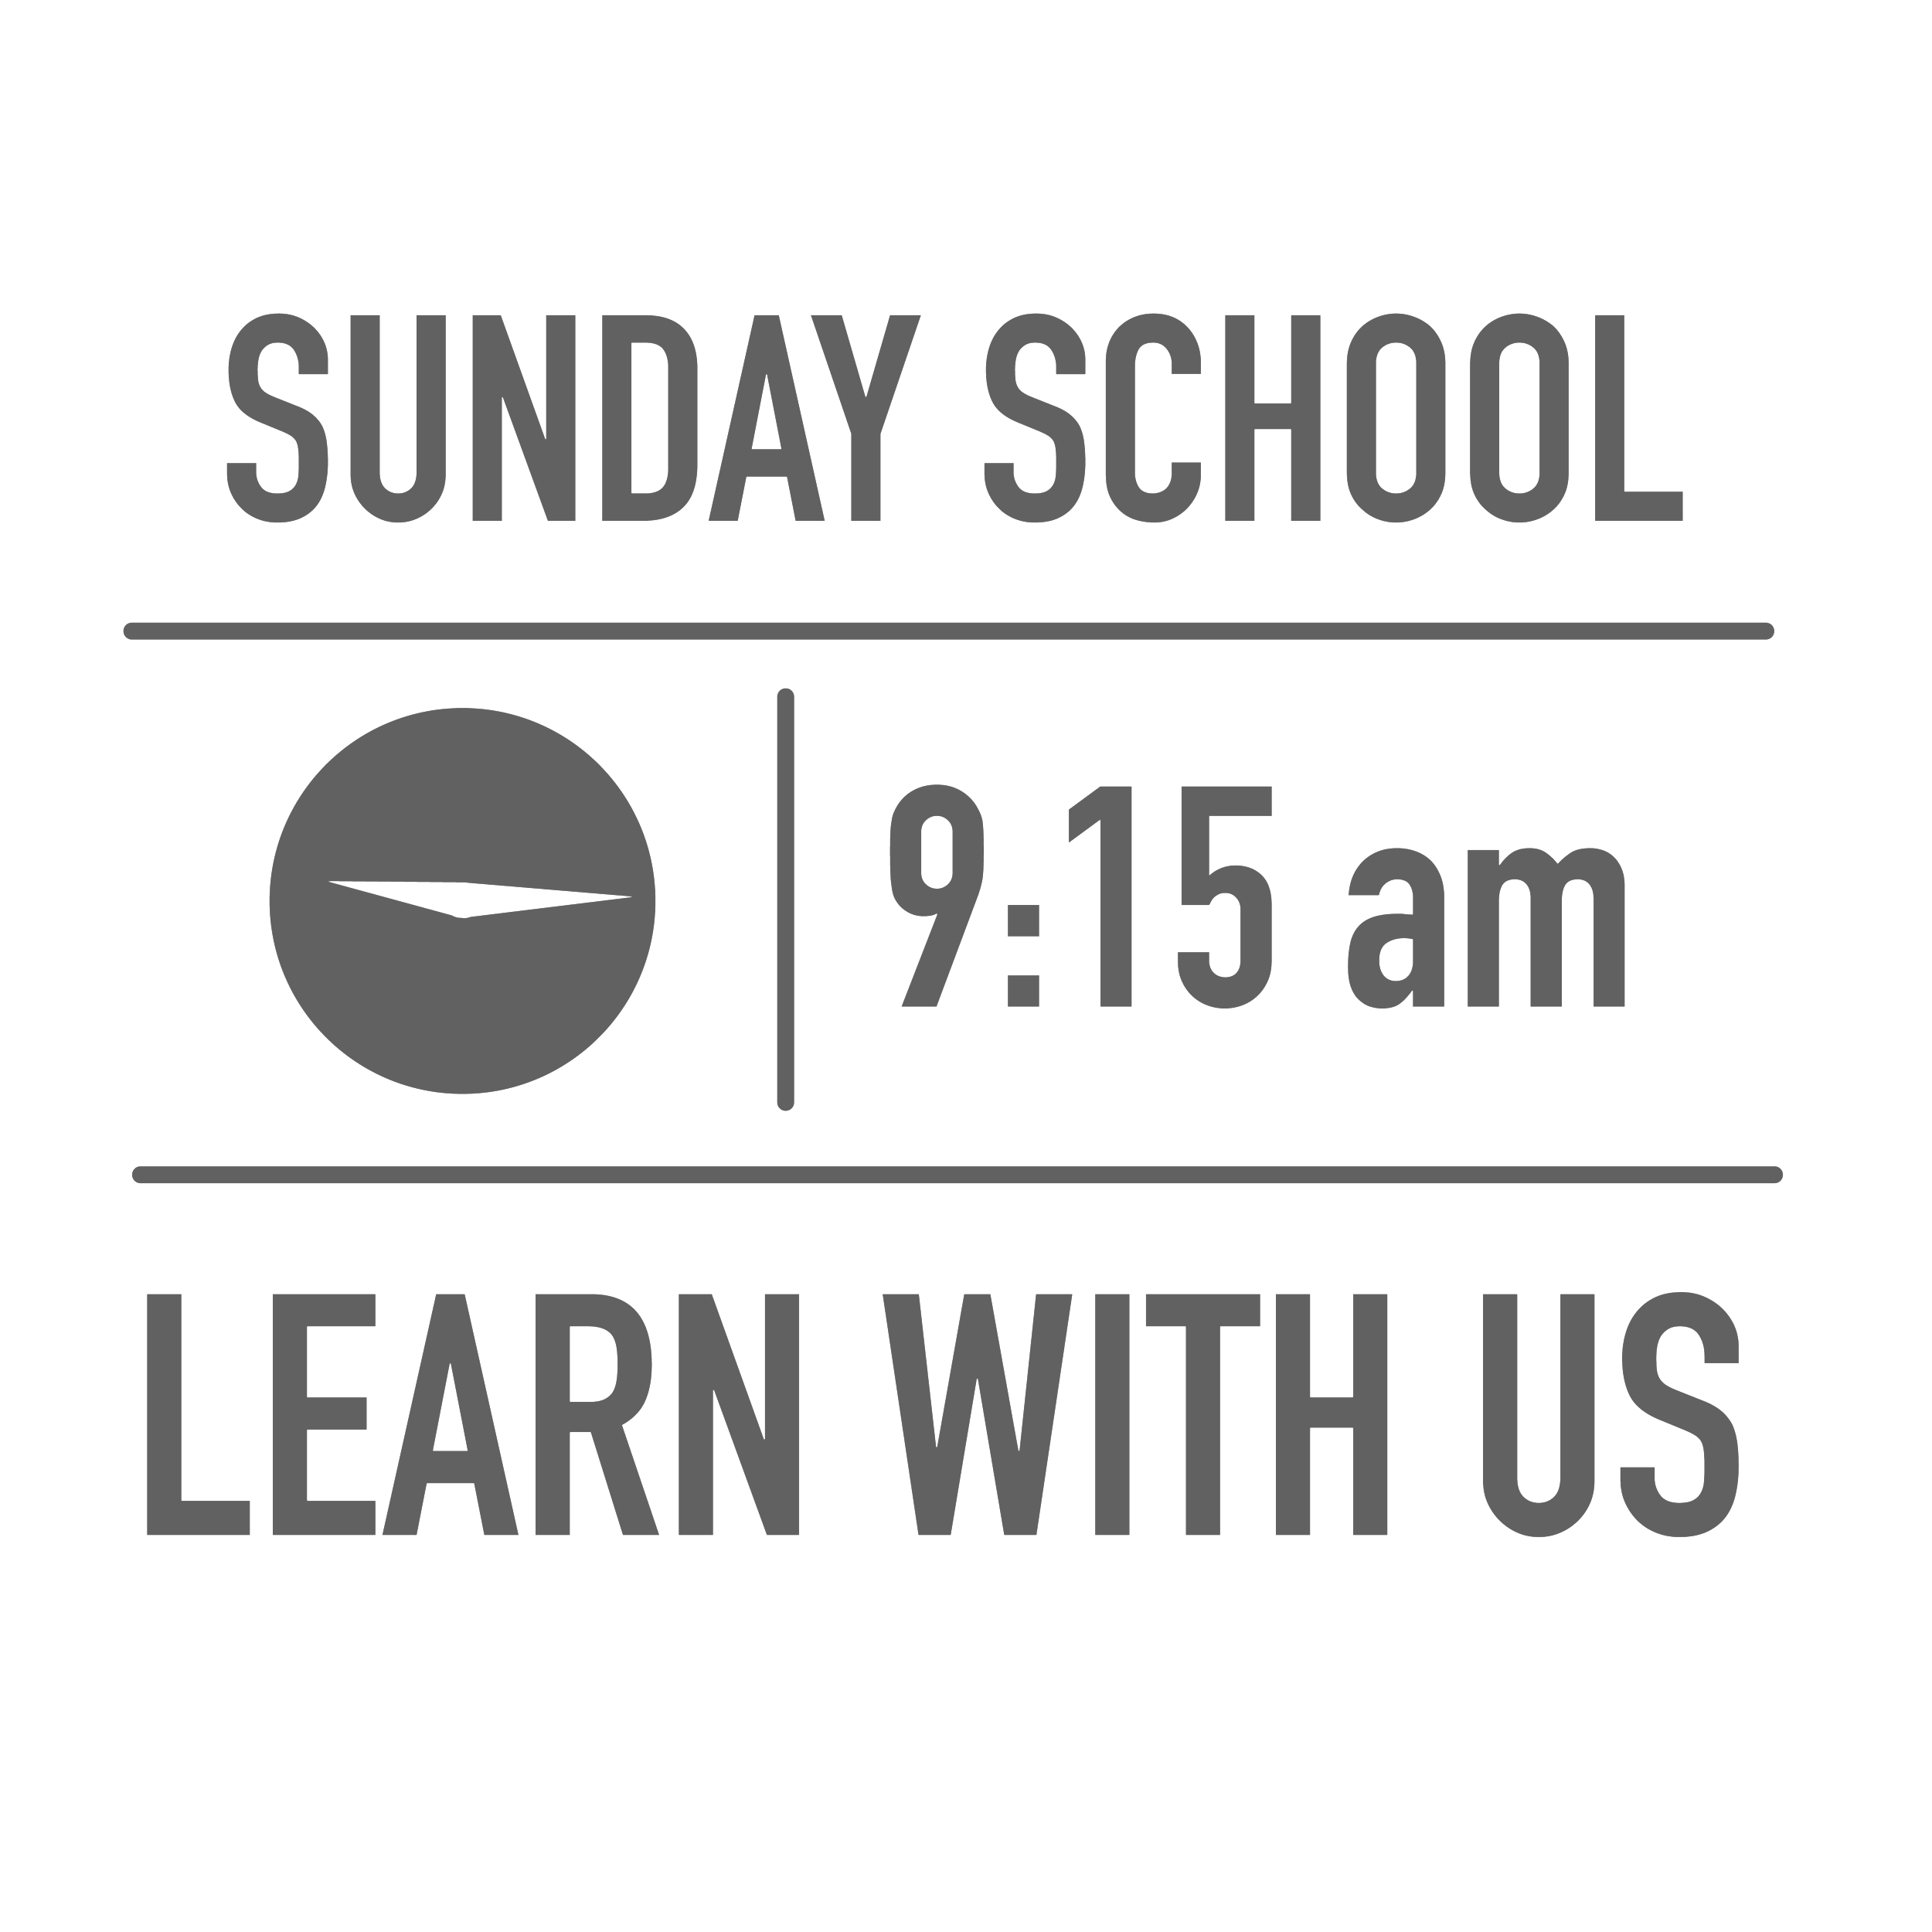 Sunday School is not meeting during the summer. It will resume in September.